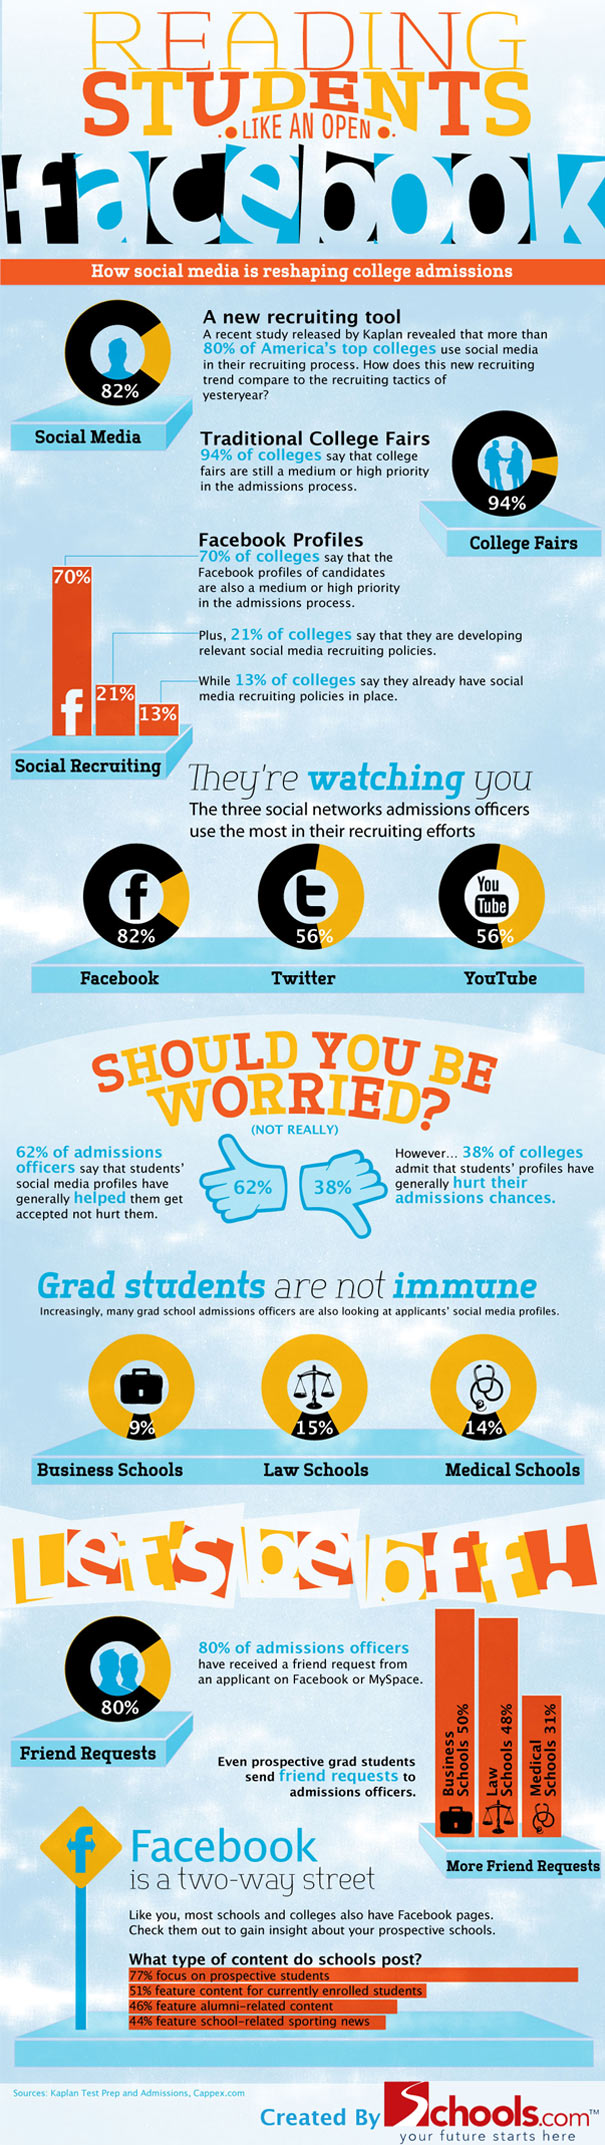 Facebook Has A Huge Impact On College Admissions [Infographic]